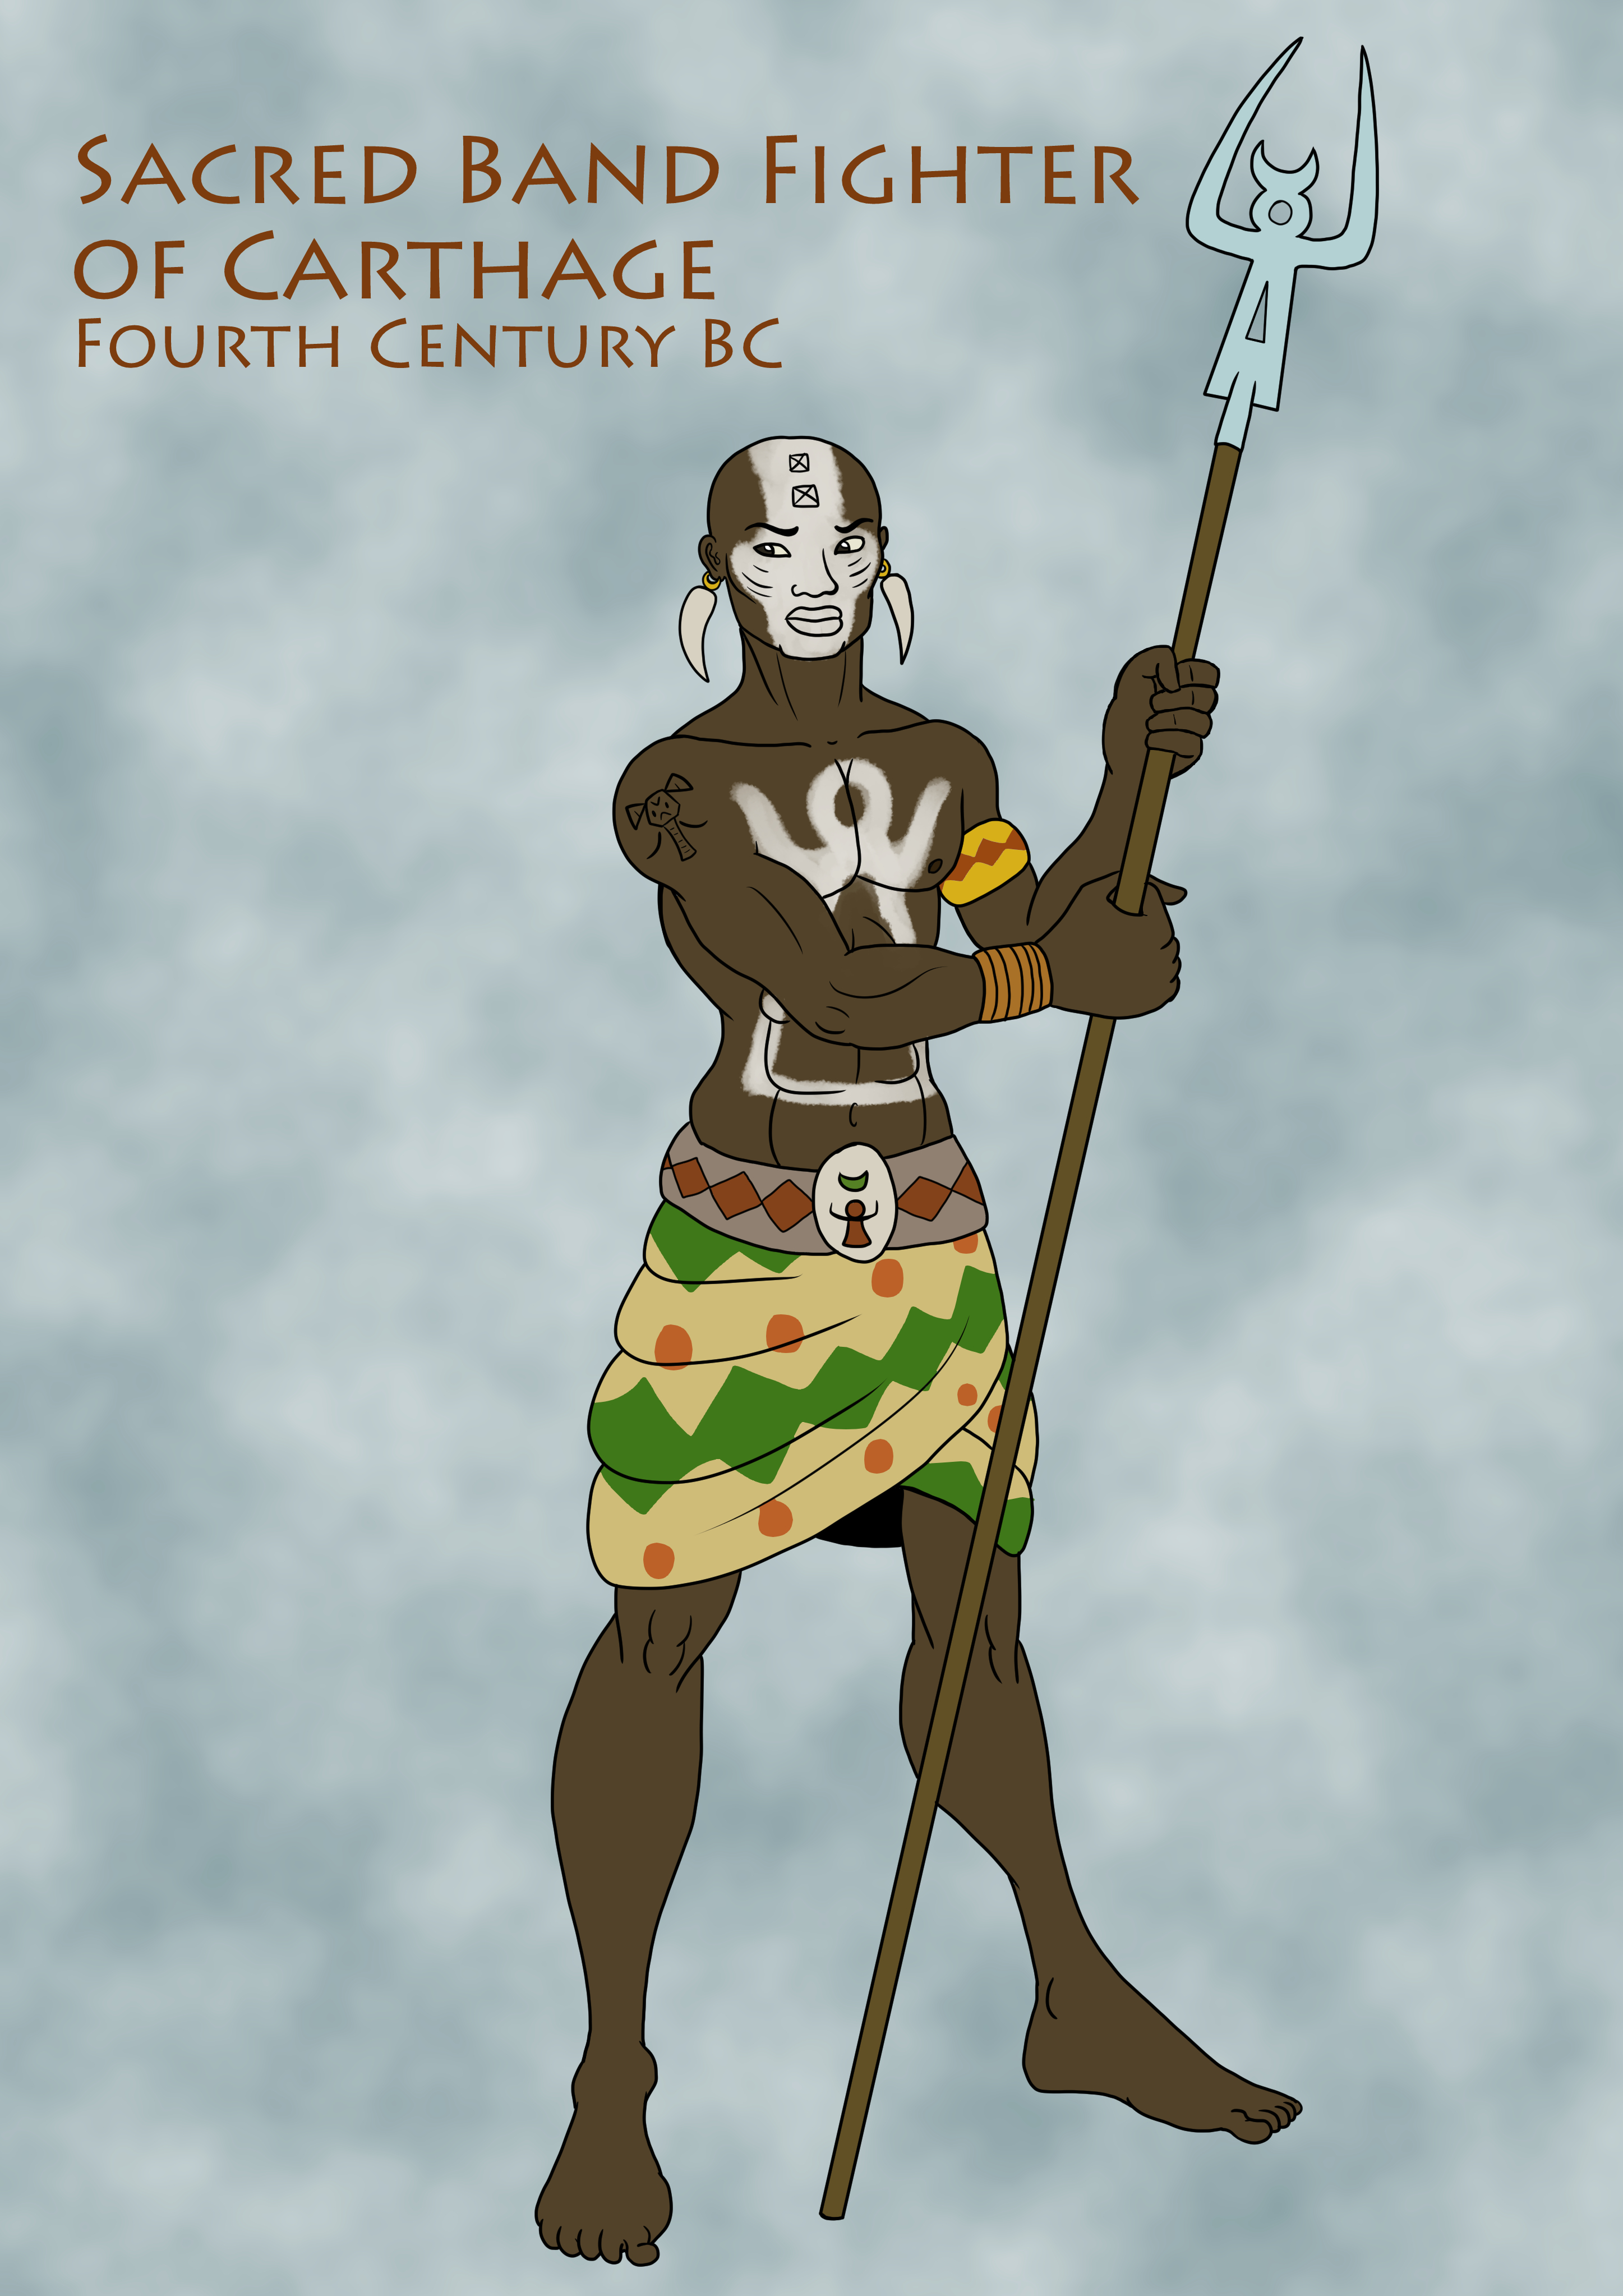 Sacred Band Fighter of Carthage